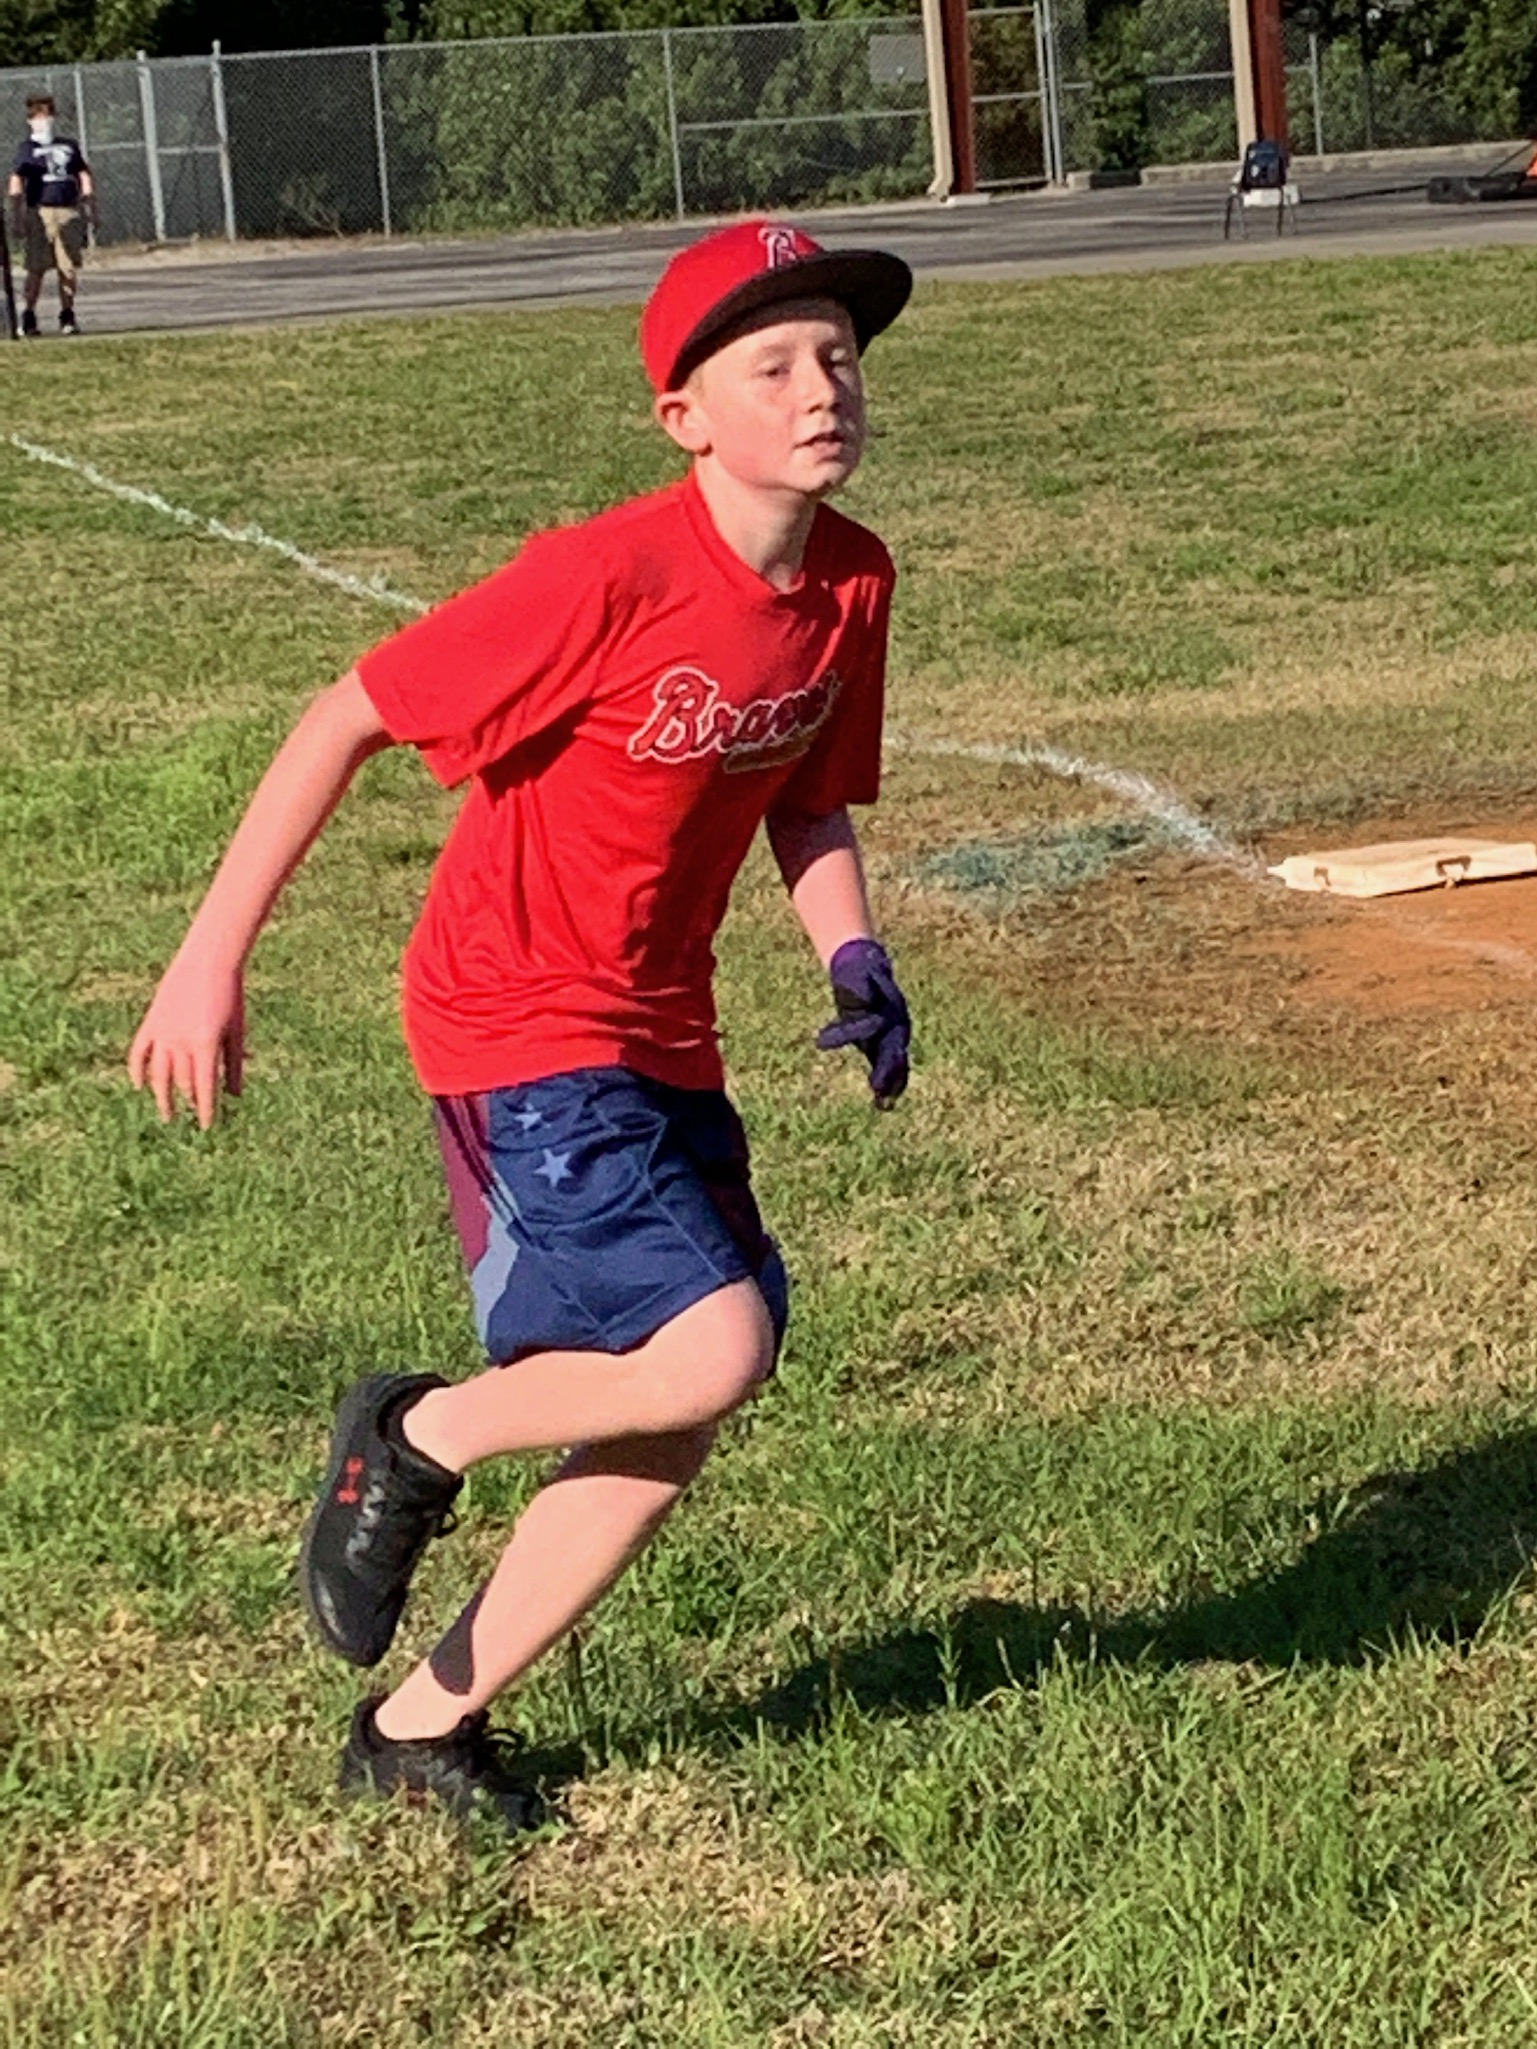 A 5th grade student running the bases.